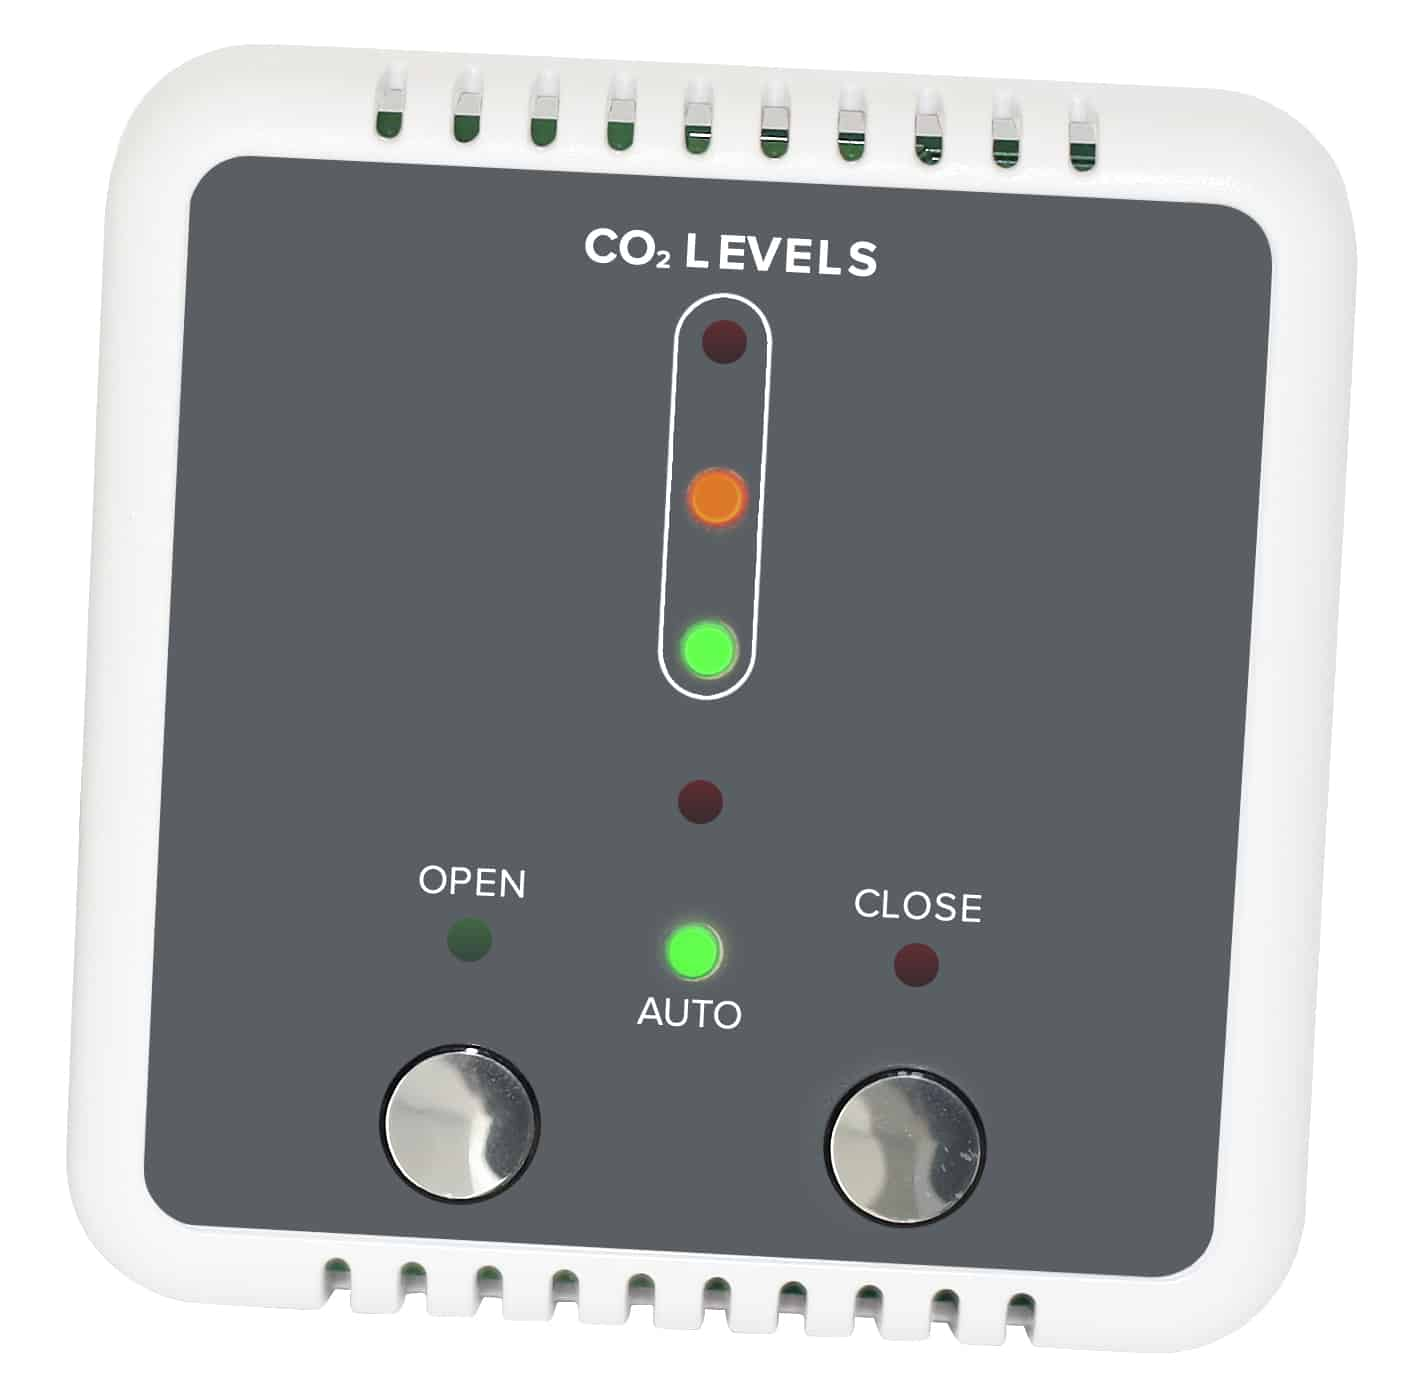 Natural Vent Control i-con CO2 Room Sensor Clarkson Controls